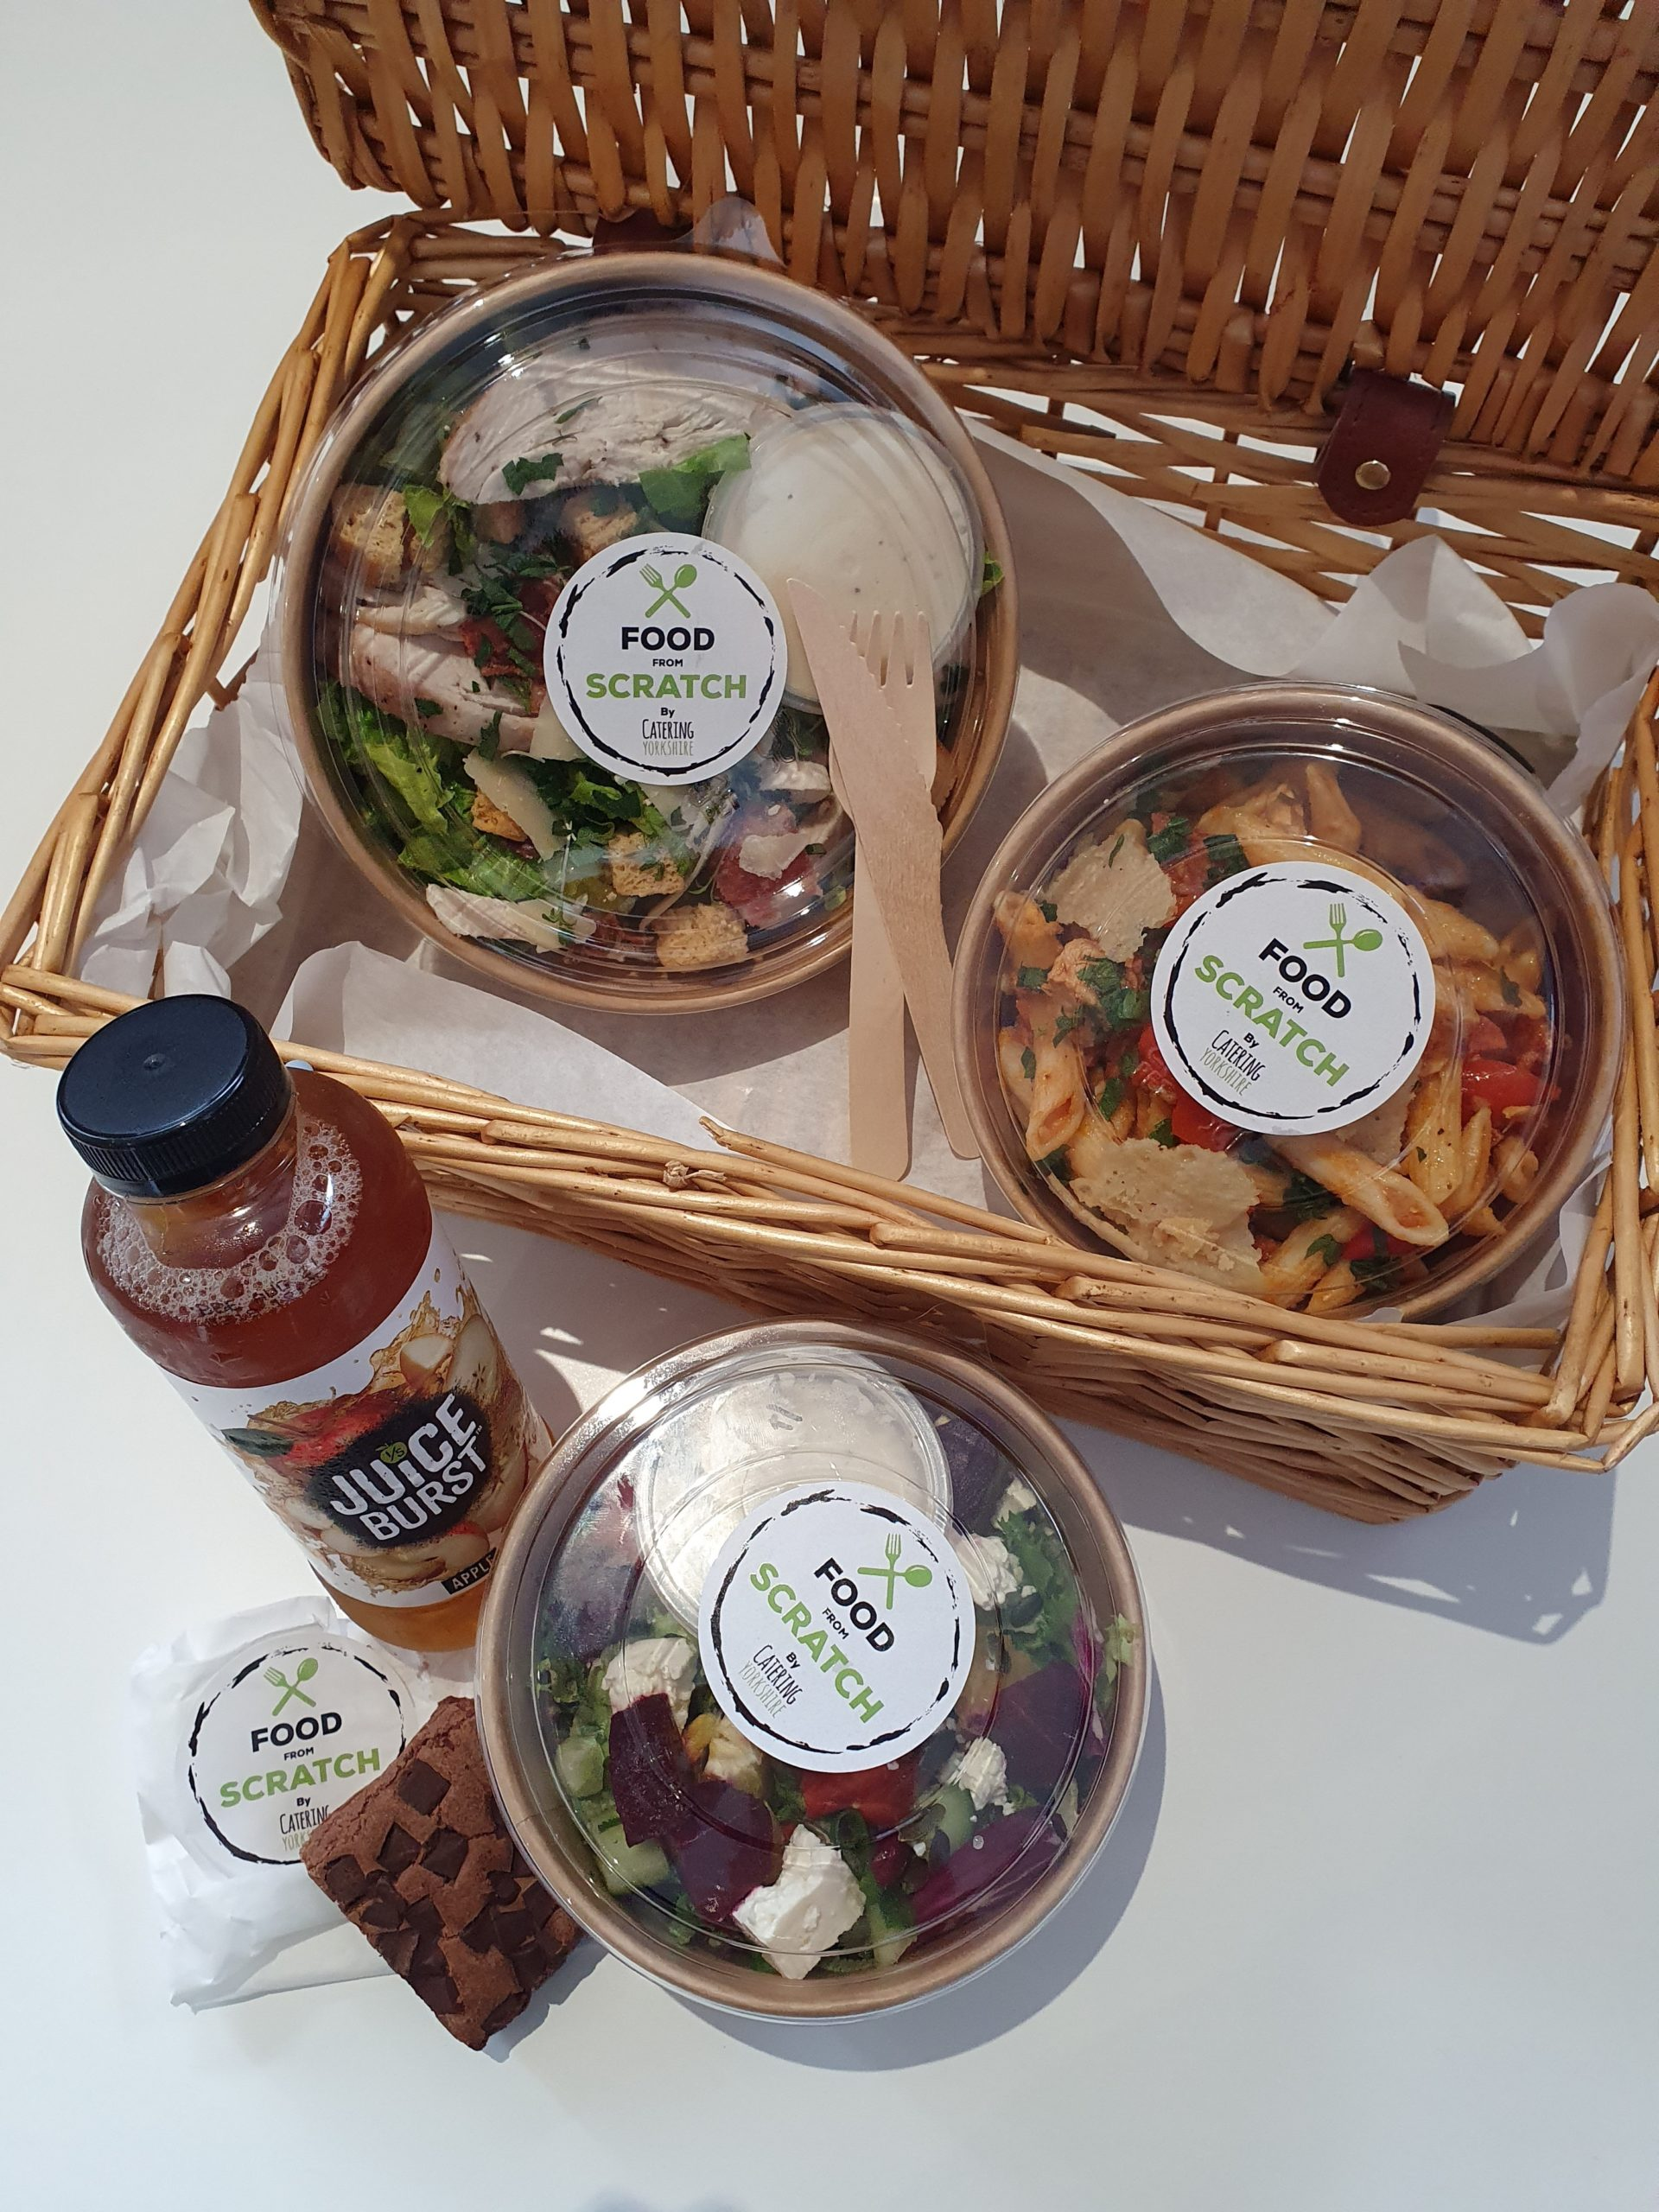 Examples of picnic food offered by Horizon in basket with salads, pastas etc